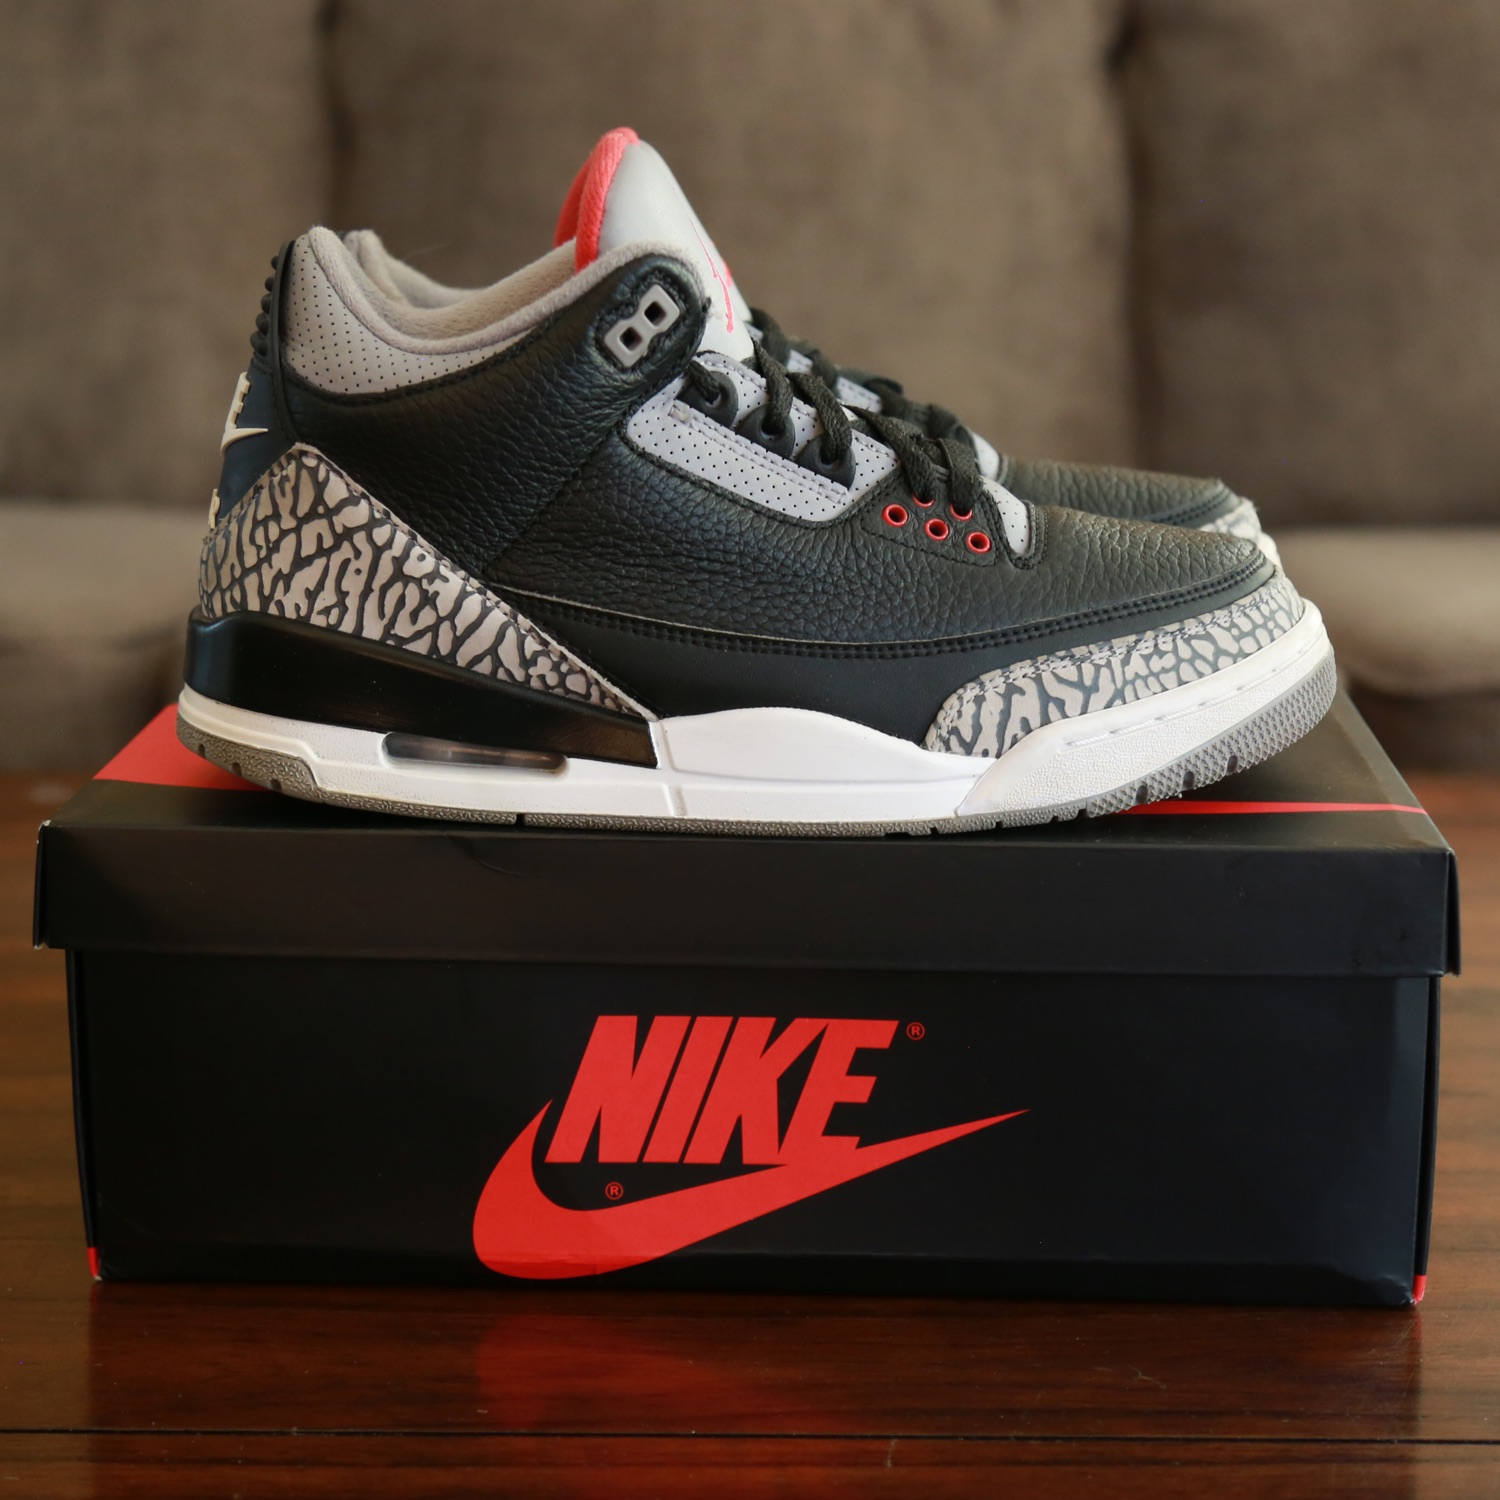 competitive price 40fa7 df2d1 Nike Air Jordan Black Cement 3